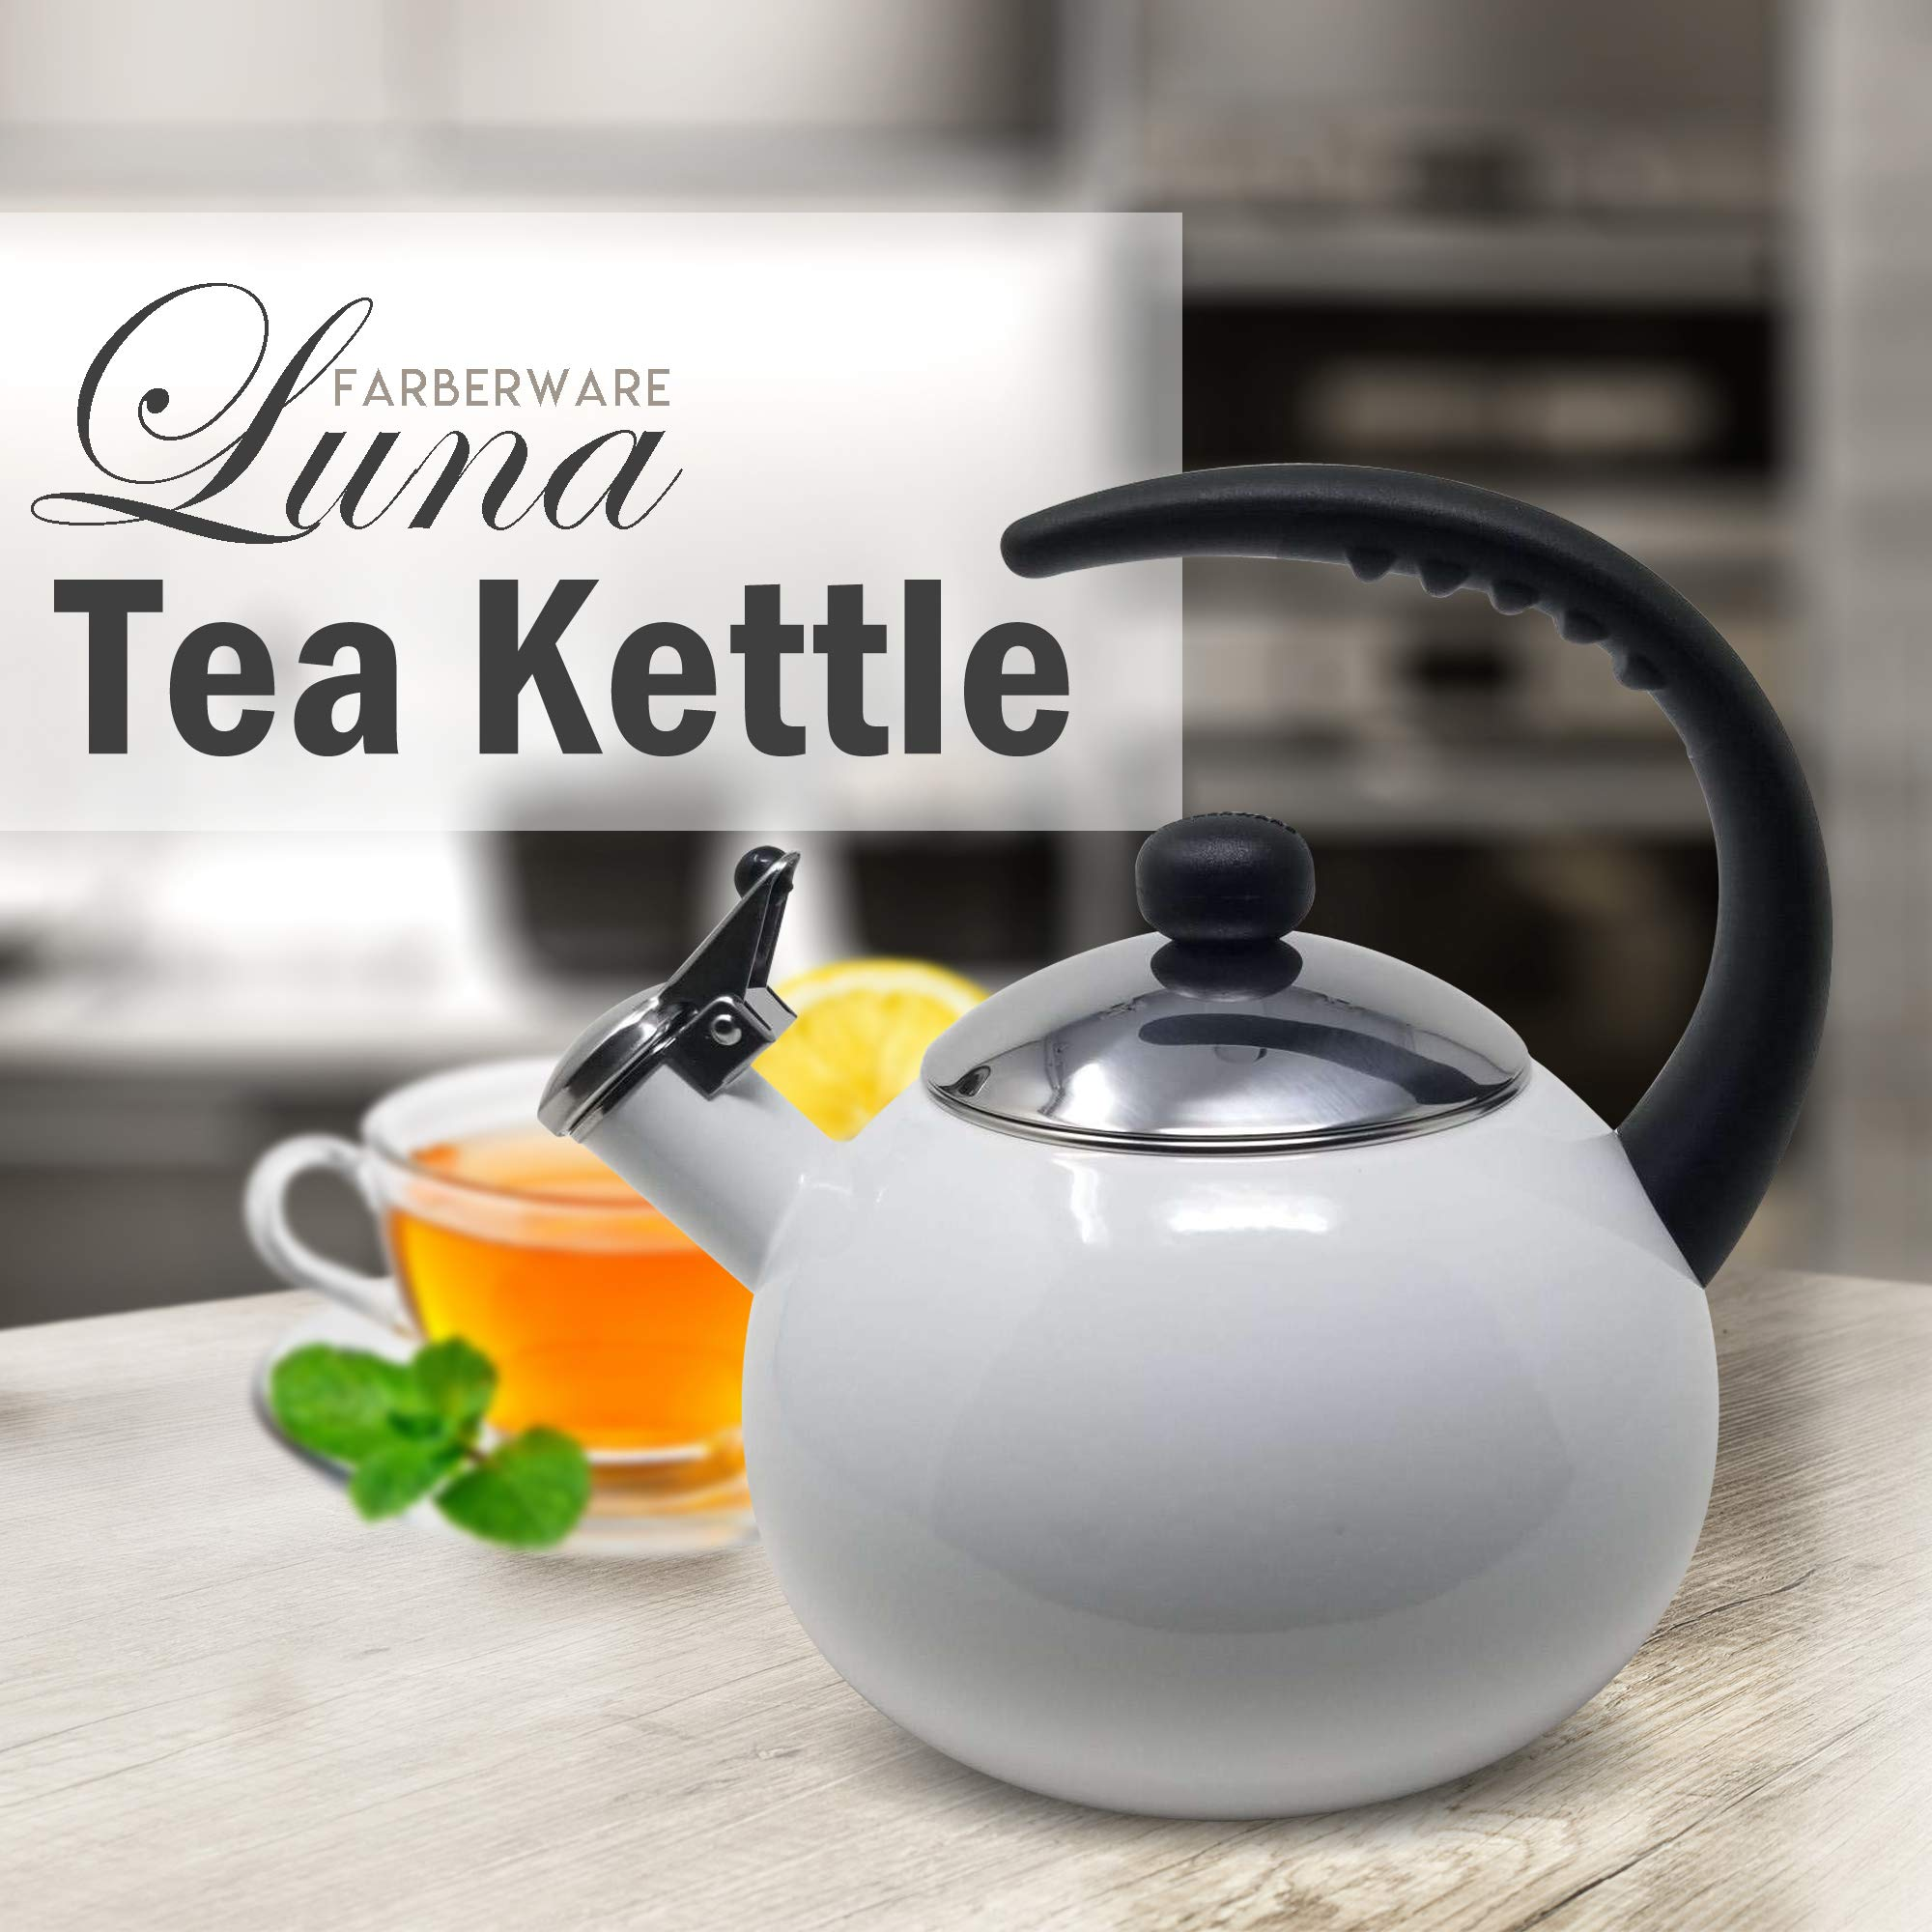 Farberware Luna White Porcelain Enameled Food Grade 18/8 Stainless Steel Soft Whistle Anti- Hot and Anti-Rust TEA KETTLE with Soft Grip Handle Flip Up Spout Heavy Gauge STOVETOP POT 2 QT. by Alfay (Image #2)